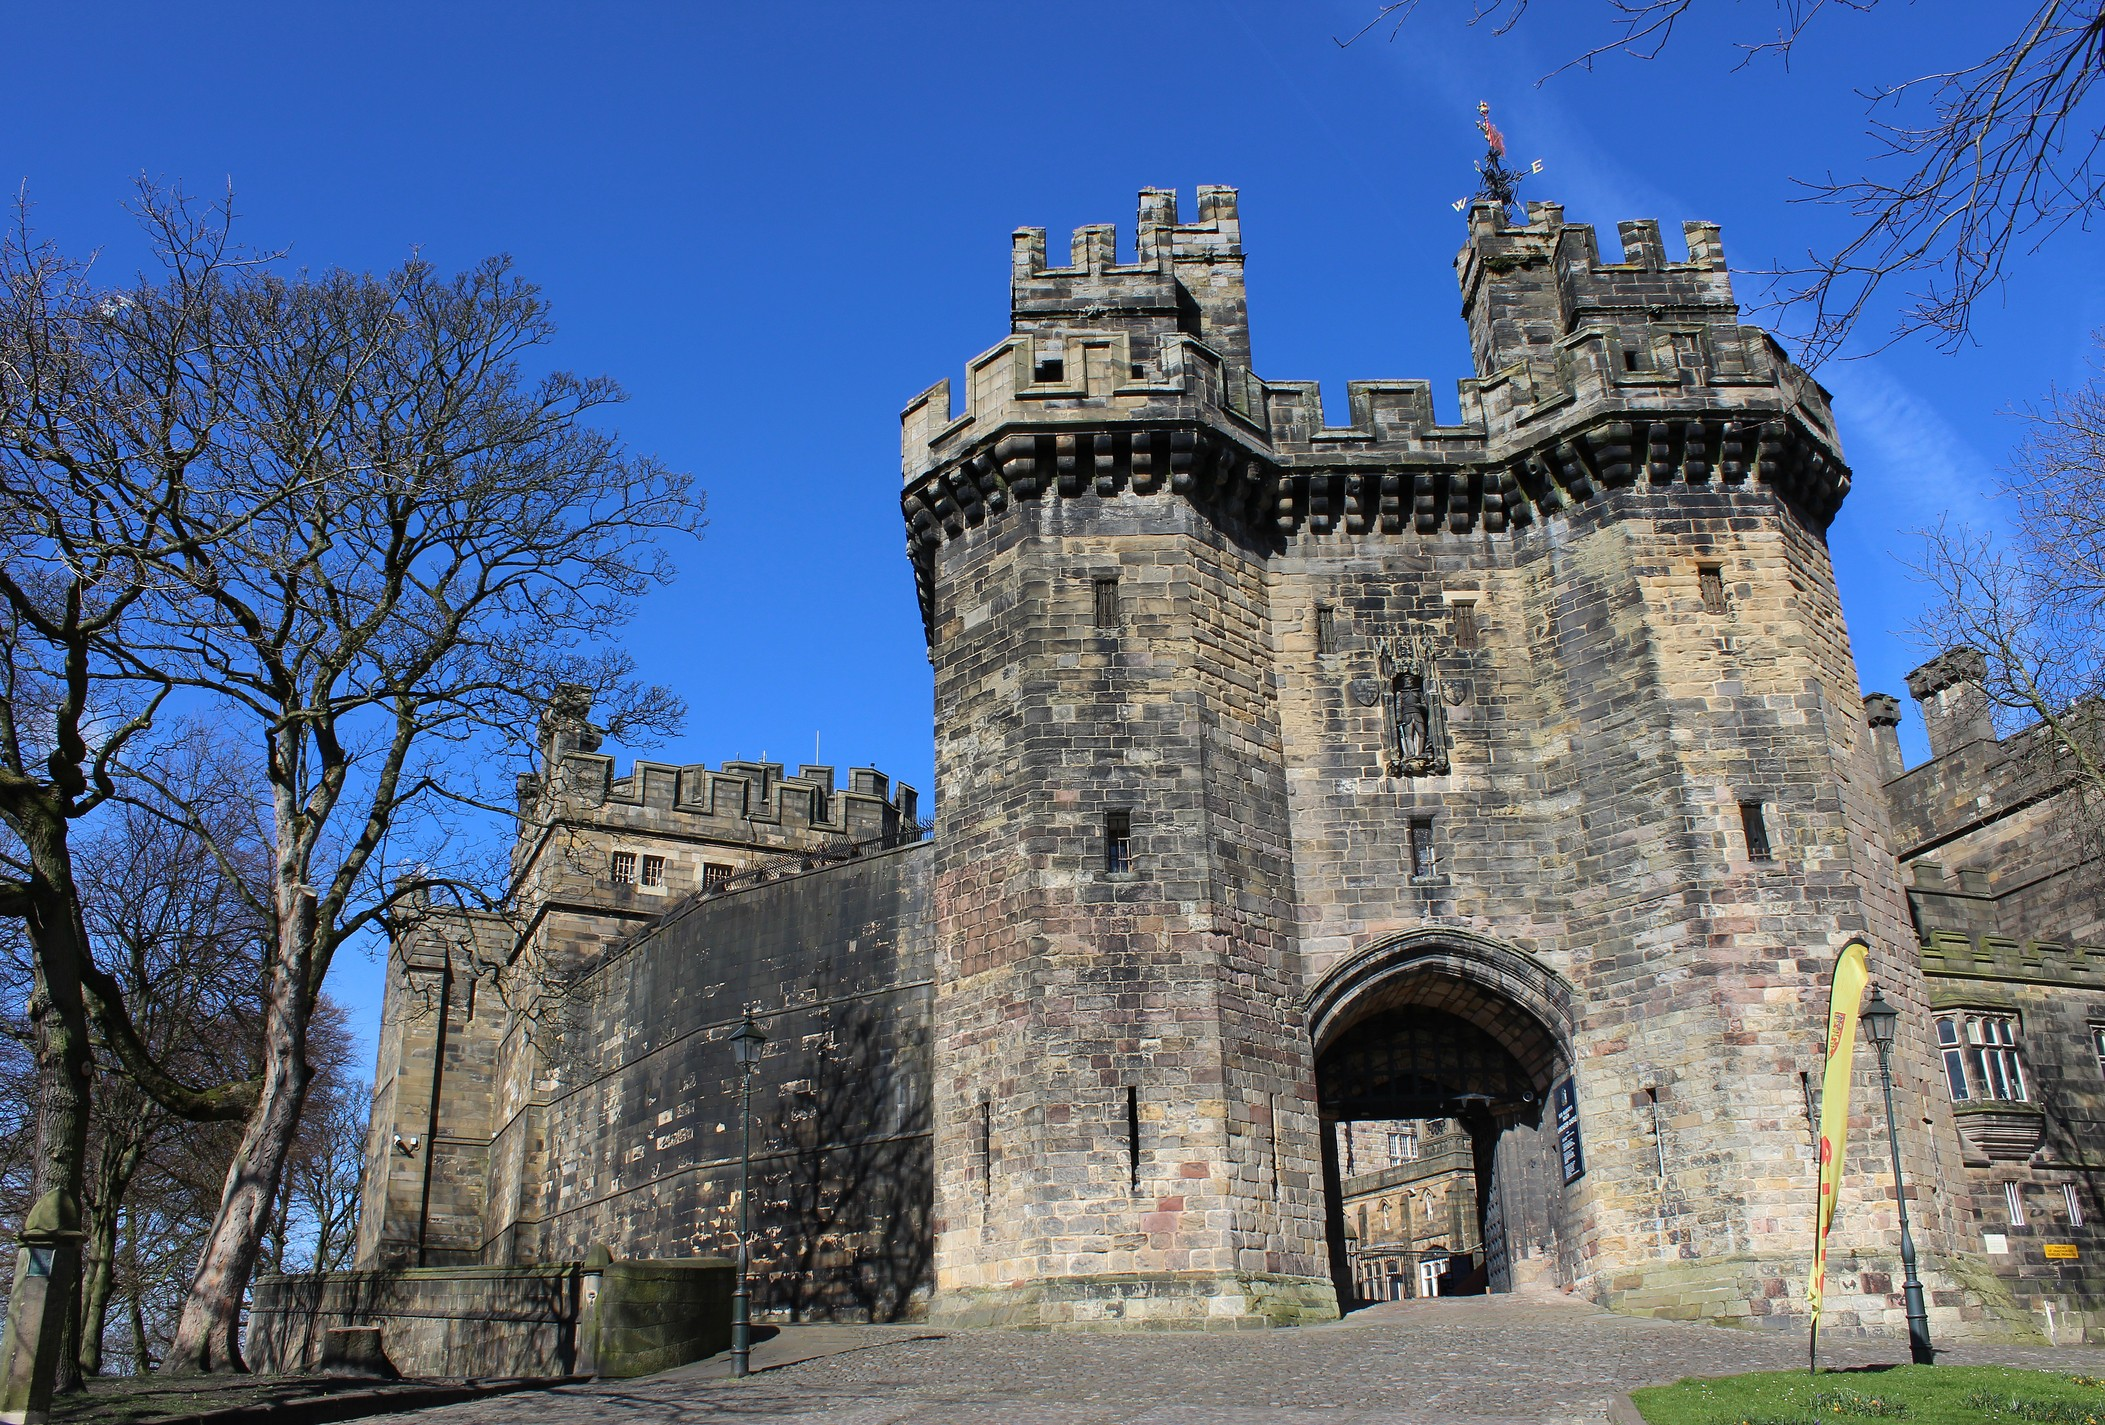 The gatehouse of Lancaster Castle